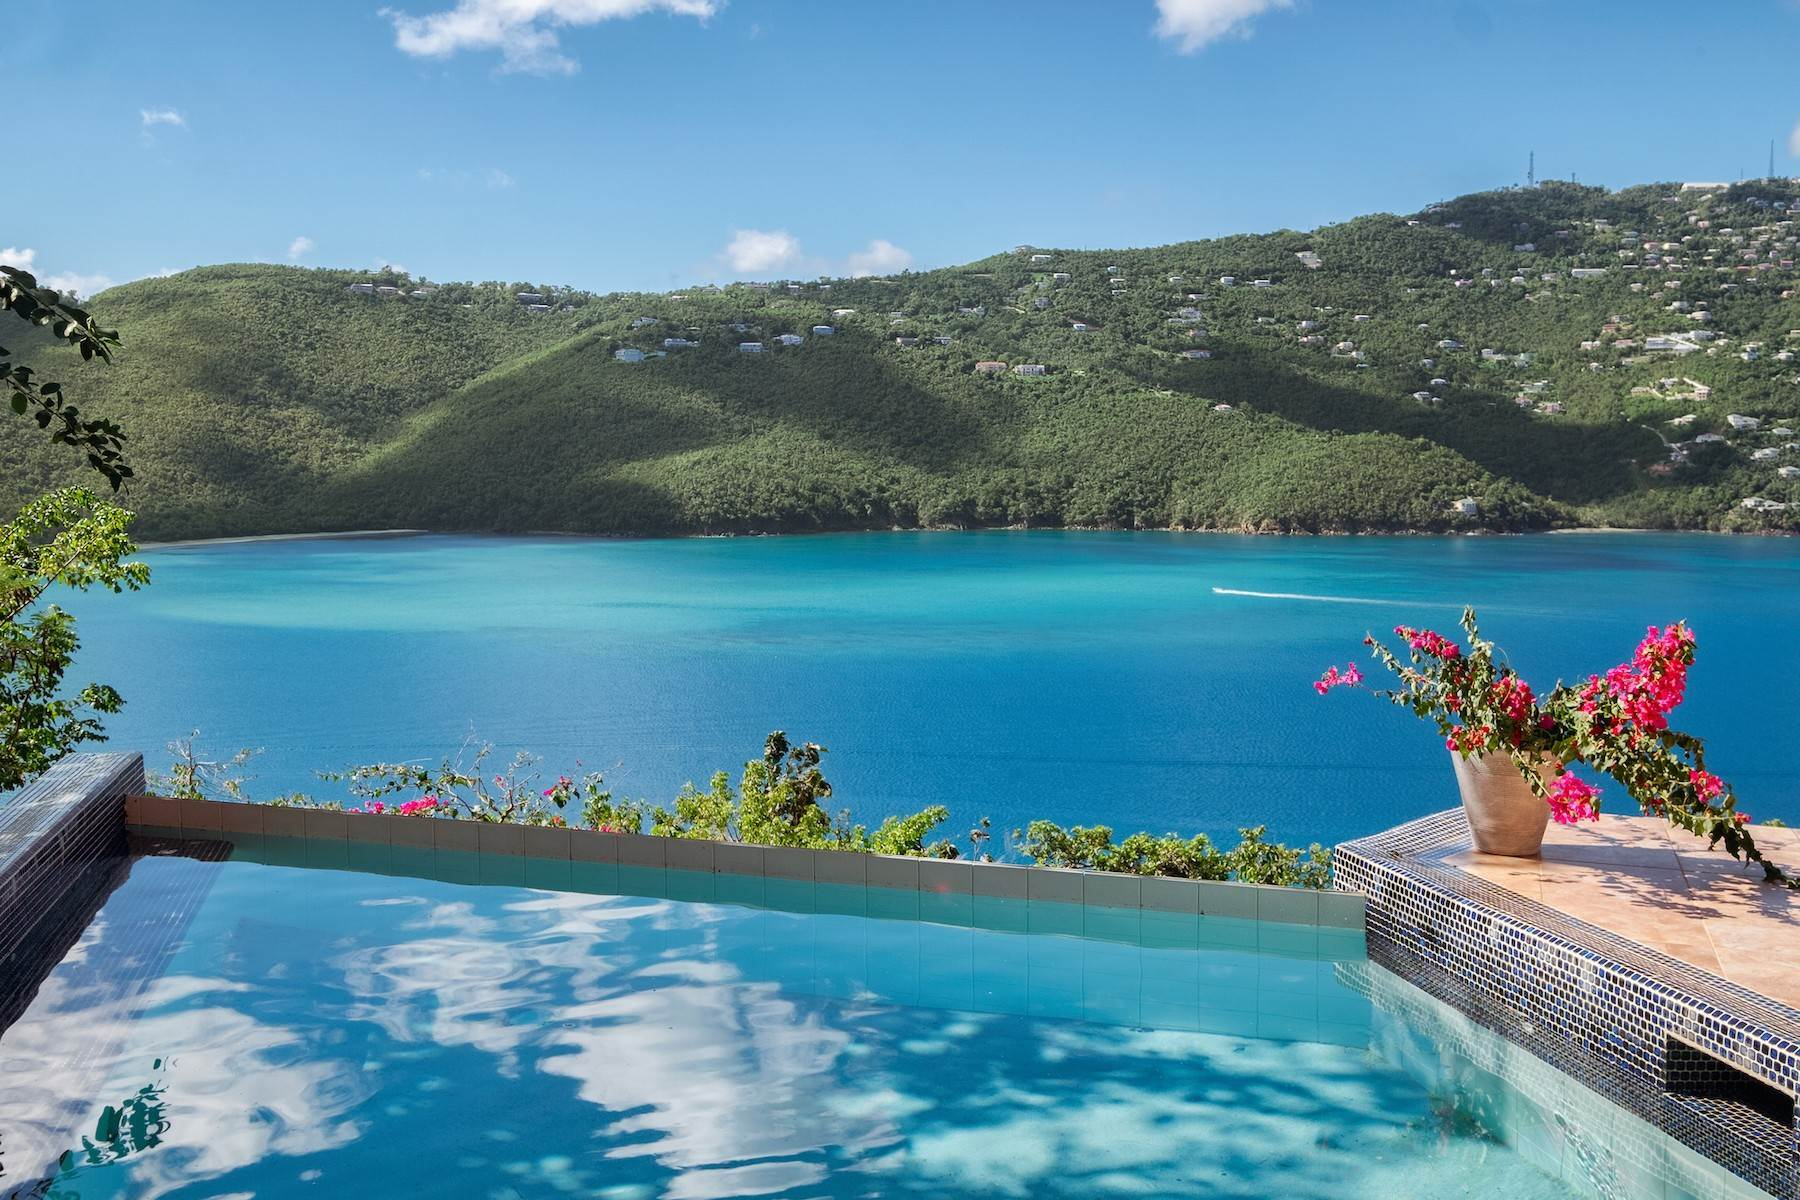 Single Family Homes for Sale at Red Rock Villa 10-1-12 Peterborg St Thomas, Virgin Islands 00802 United States Virgin Islands